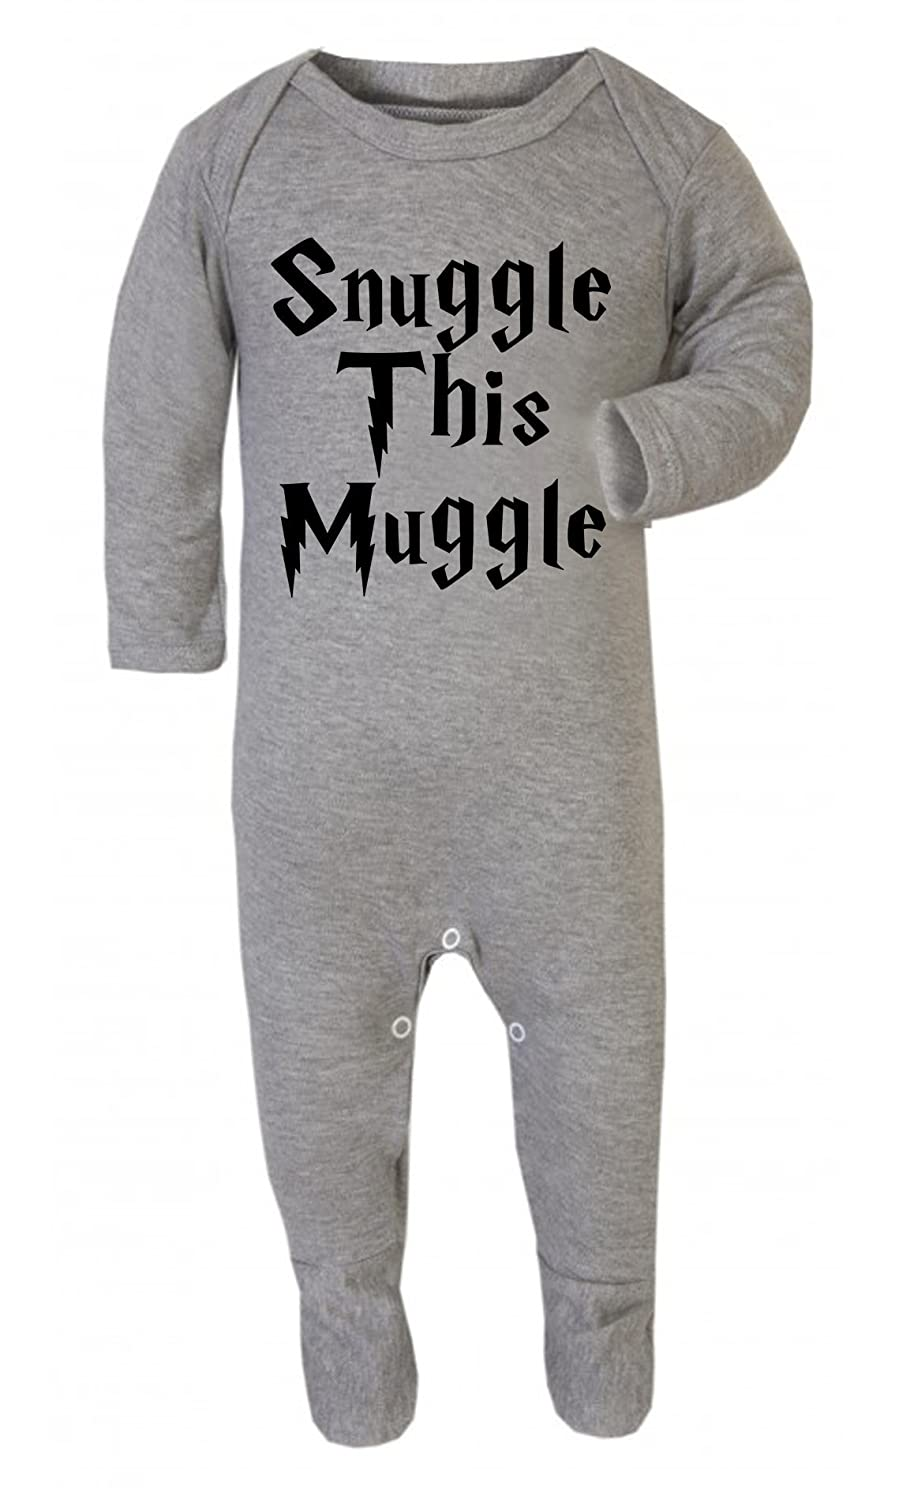 Harry Potter Inspired Gift Baby Vest Snuggle This Muggle Babygrow